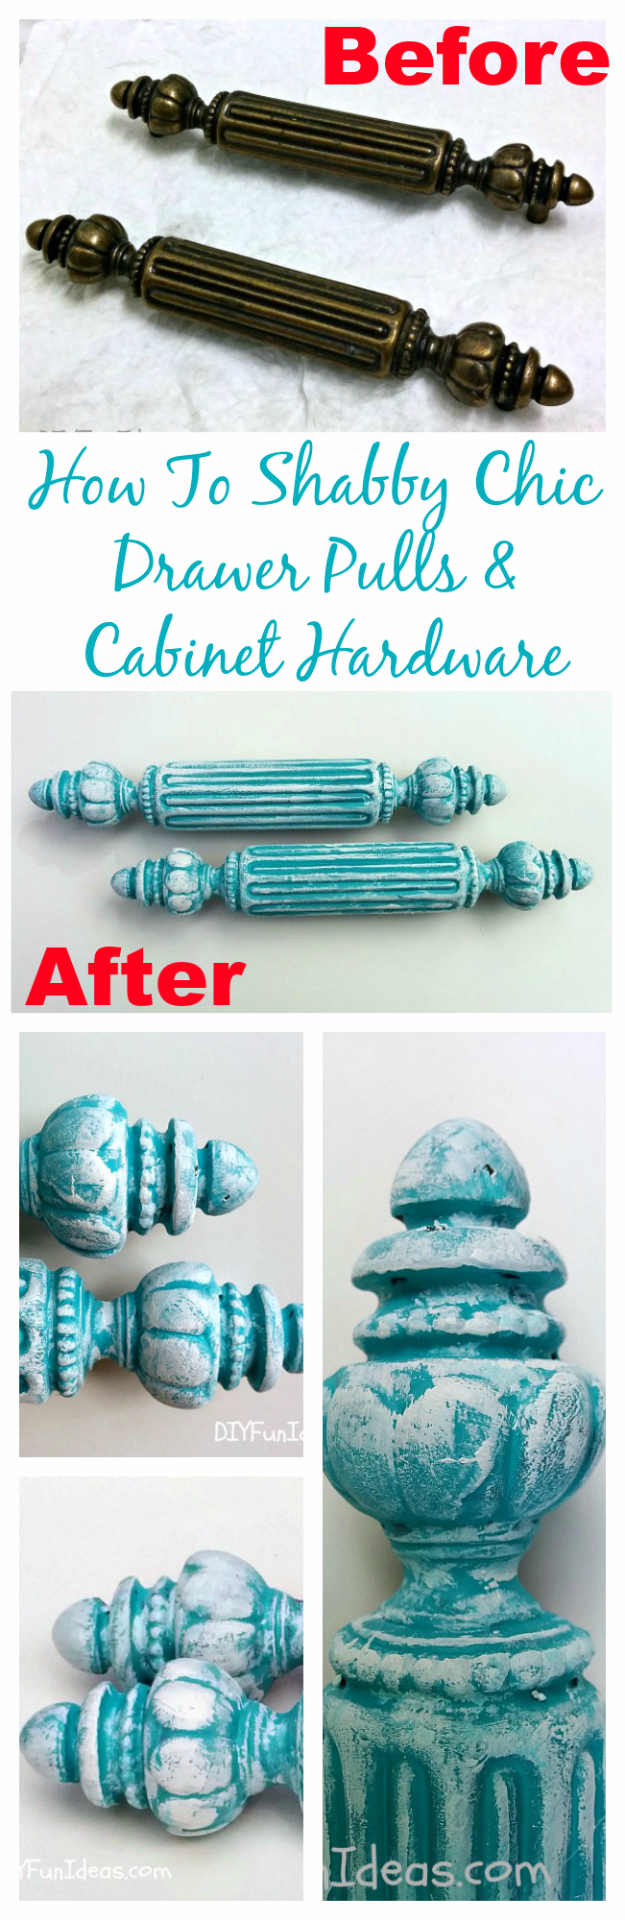 Shabby Chic Decor and Bedding Ideas - Shabby Chic Antique Cabinet Hardware And Drawer Pulls - Rustic and Romantic Vintage Bedroom, Living Room and Kitchen Country Cottage Furniture and Home Decor Ideas. Step by Step Tutorials and Instructions http://diyjoy.com/diy-shabby-chic-decor-bedding